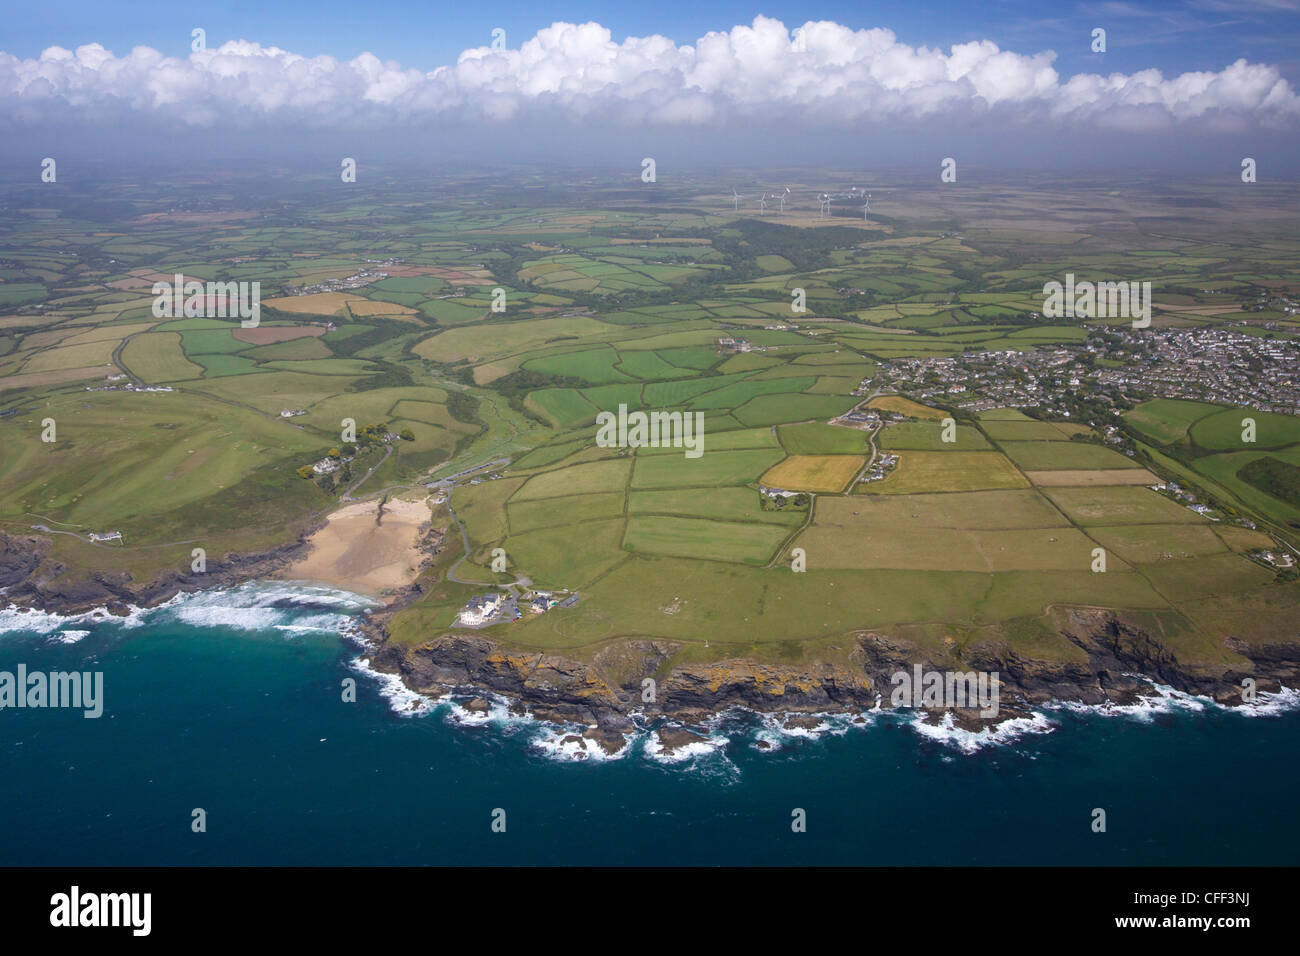 Aerial view of Poldhu Cove and Mullion, looking east to Goonhilly, Lizard Peninsula, in summer sun, Cornwall, England, - Stock Image